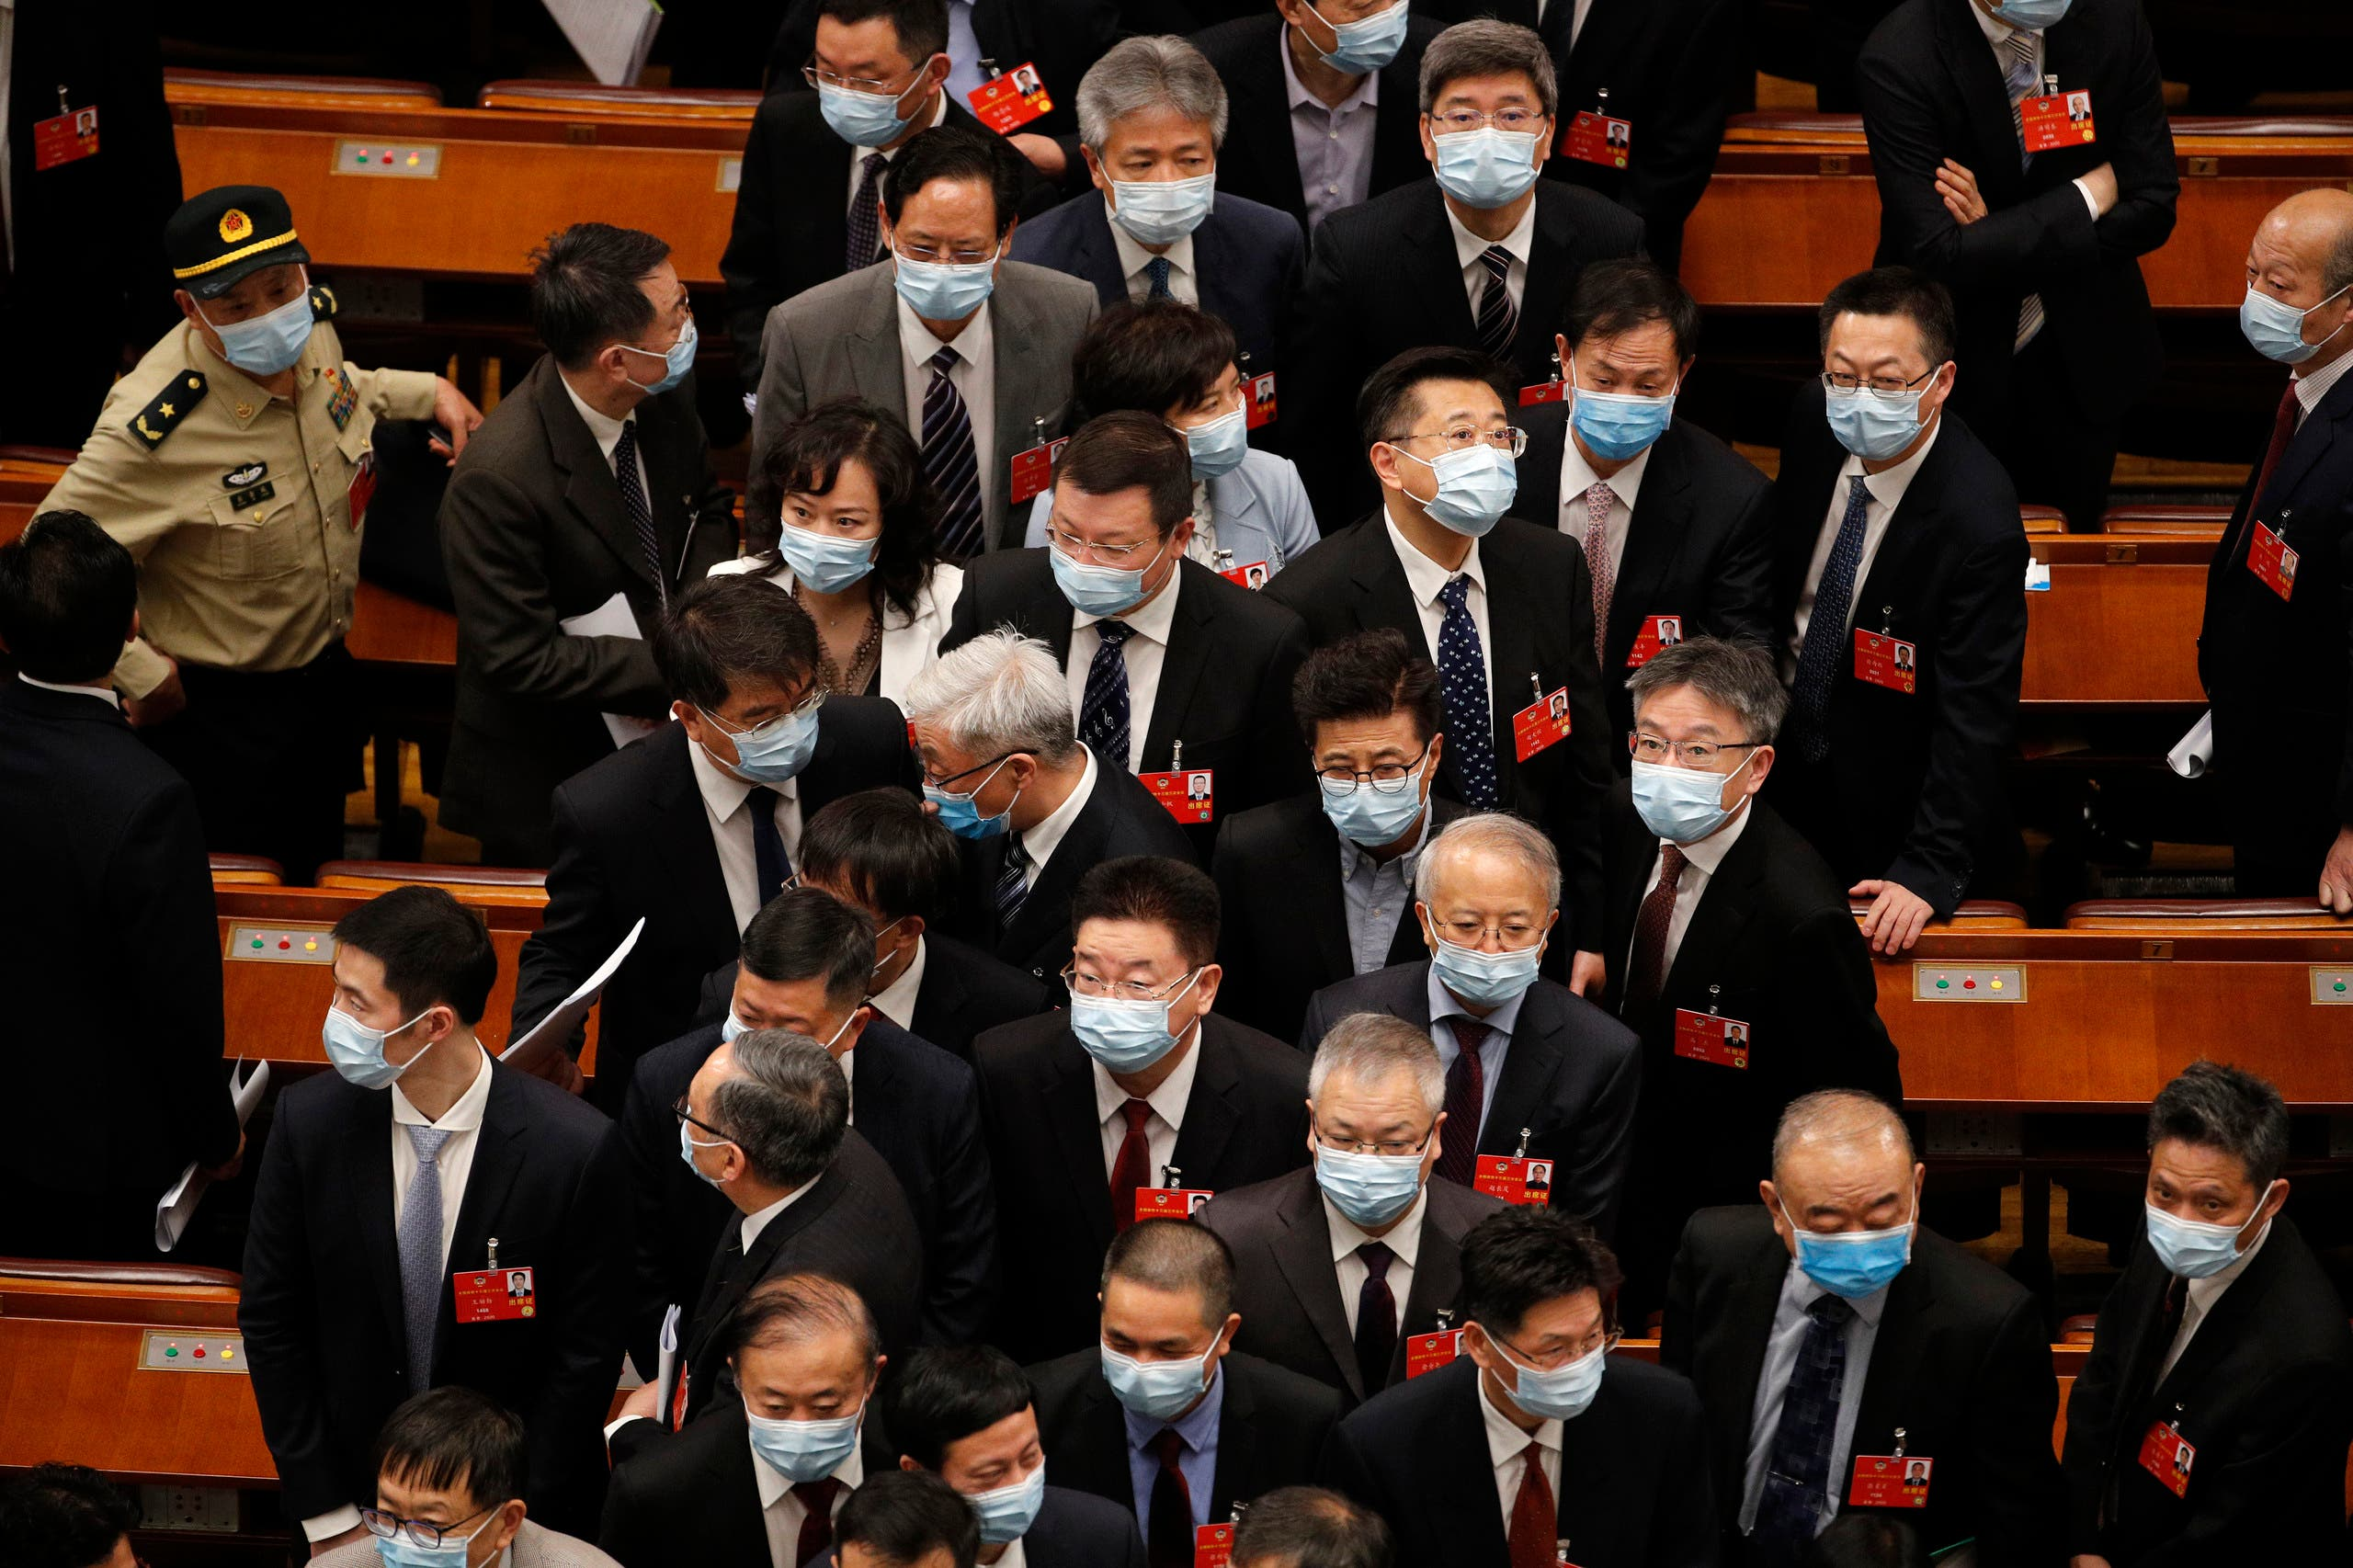 Delegates wearing face masks to protect against the spread of the new coronavirus leave after the opening session of the Chinese People's Political Consultative Conference (CPPCC) at the Great Hall of the People in Beijing on May 21, 2020. (AP)